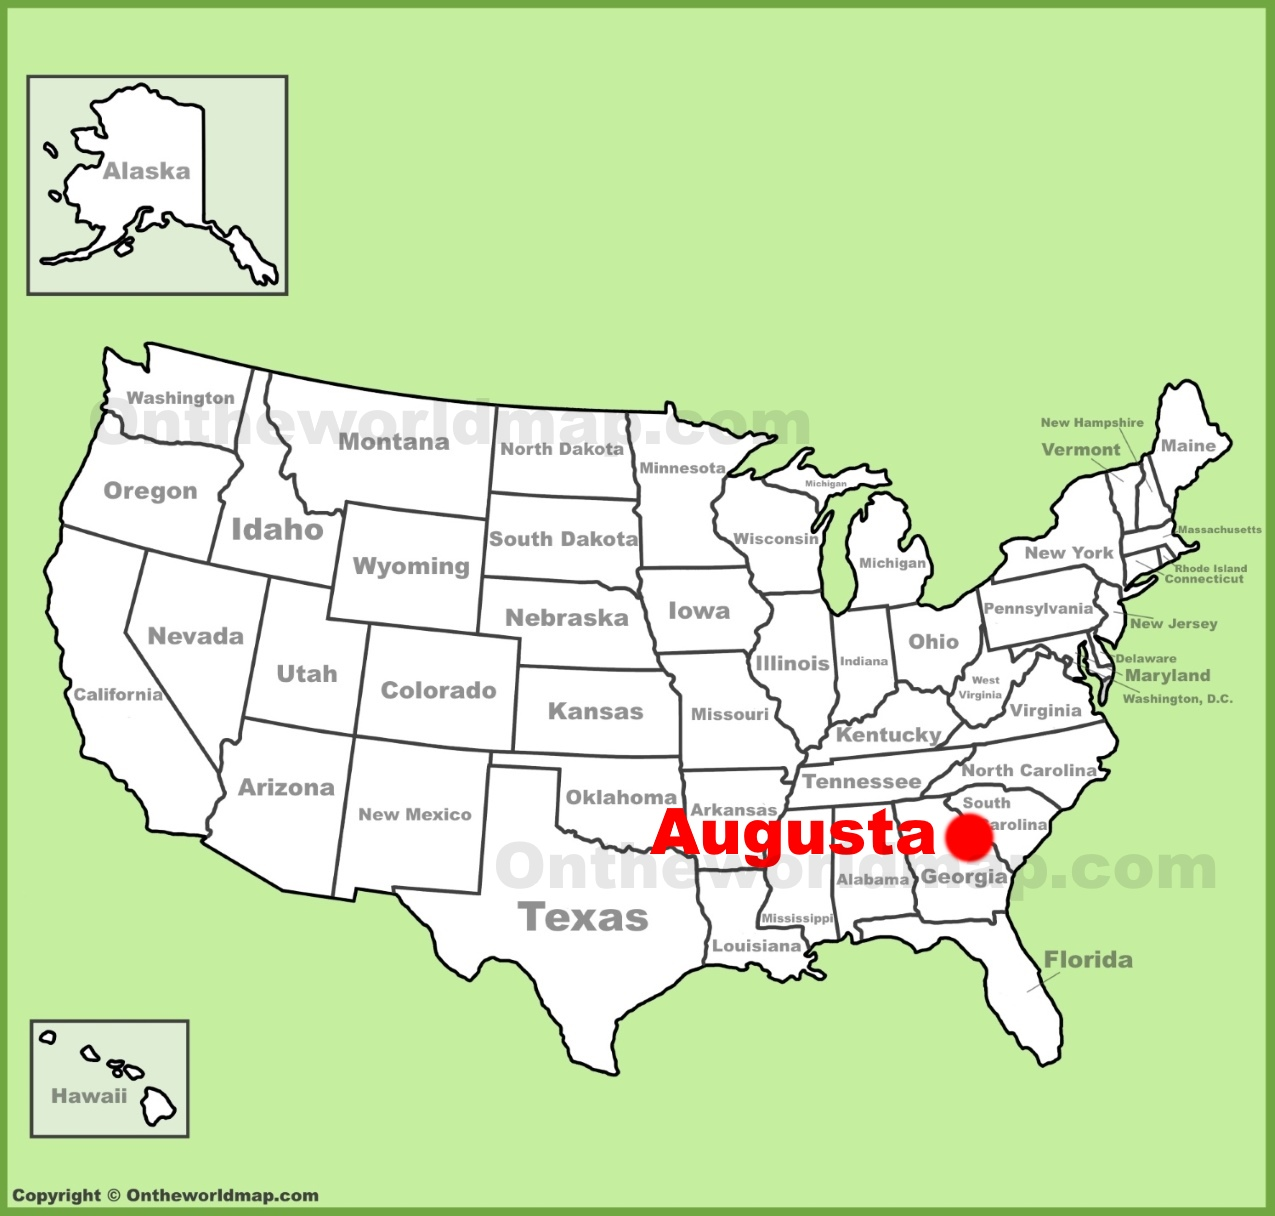 Map Of Georgia Augusta.Augusta Georgia Location On The U S Map